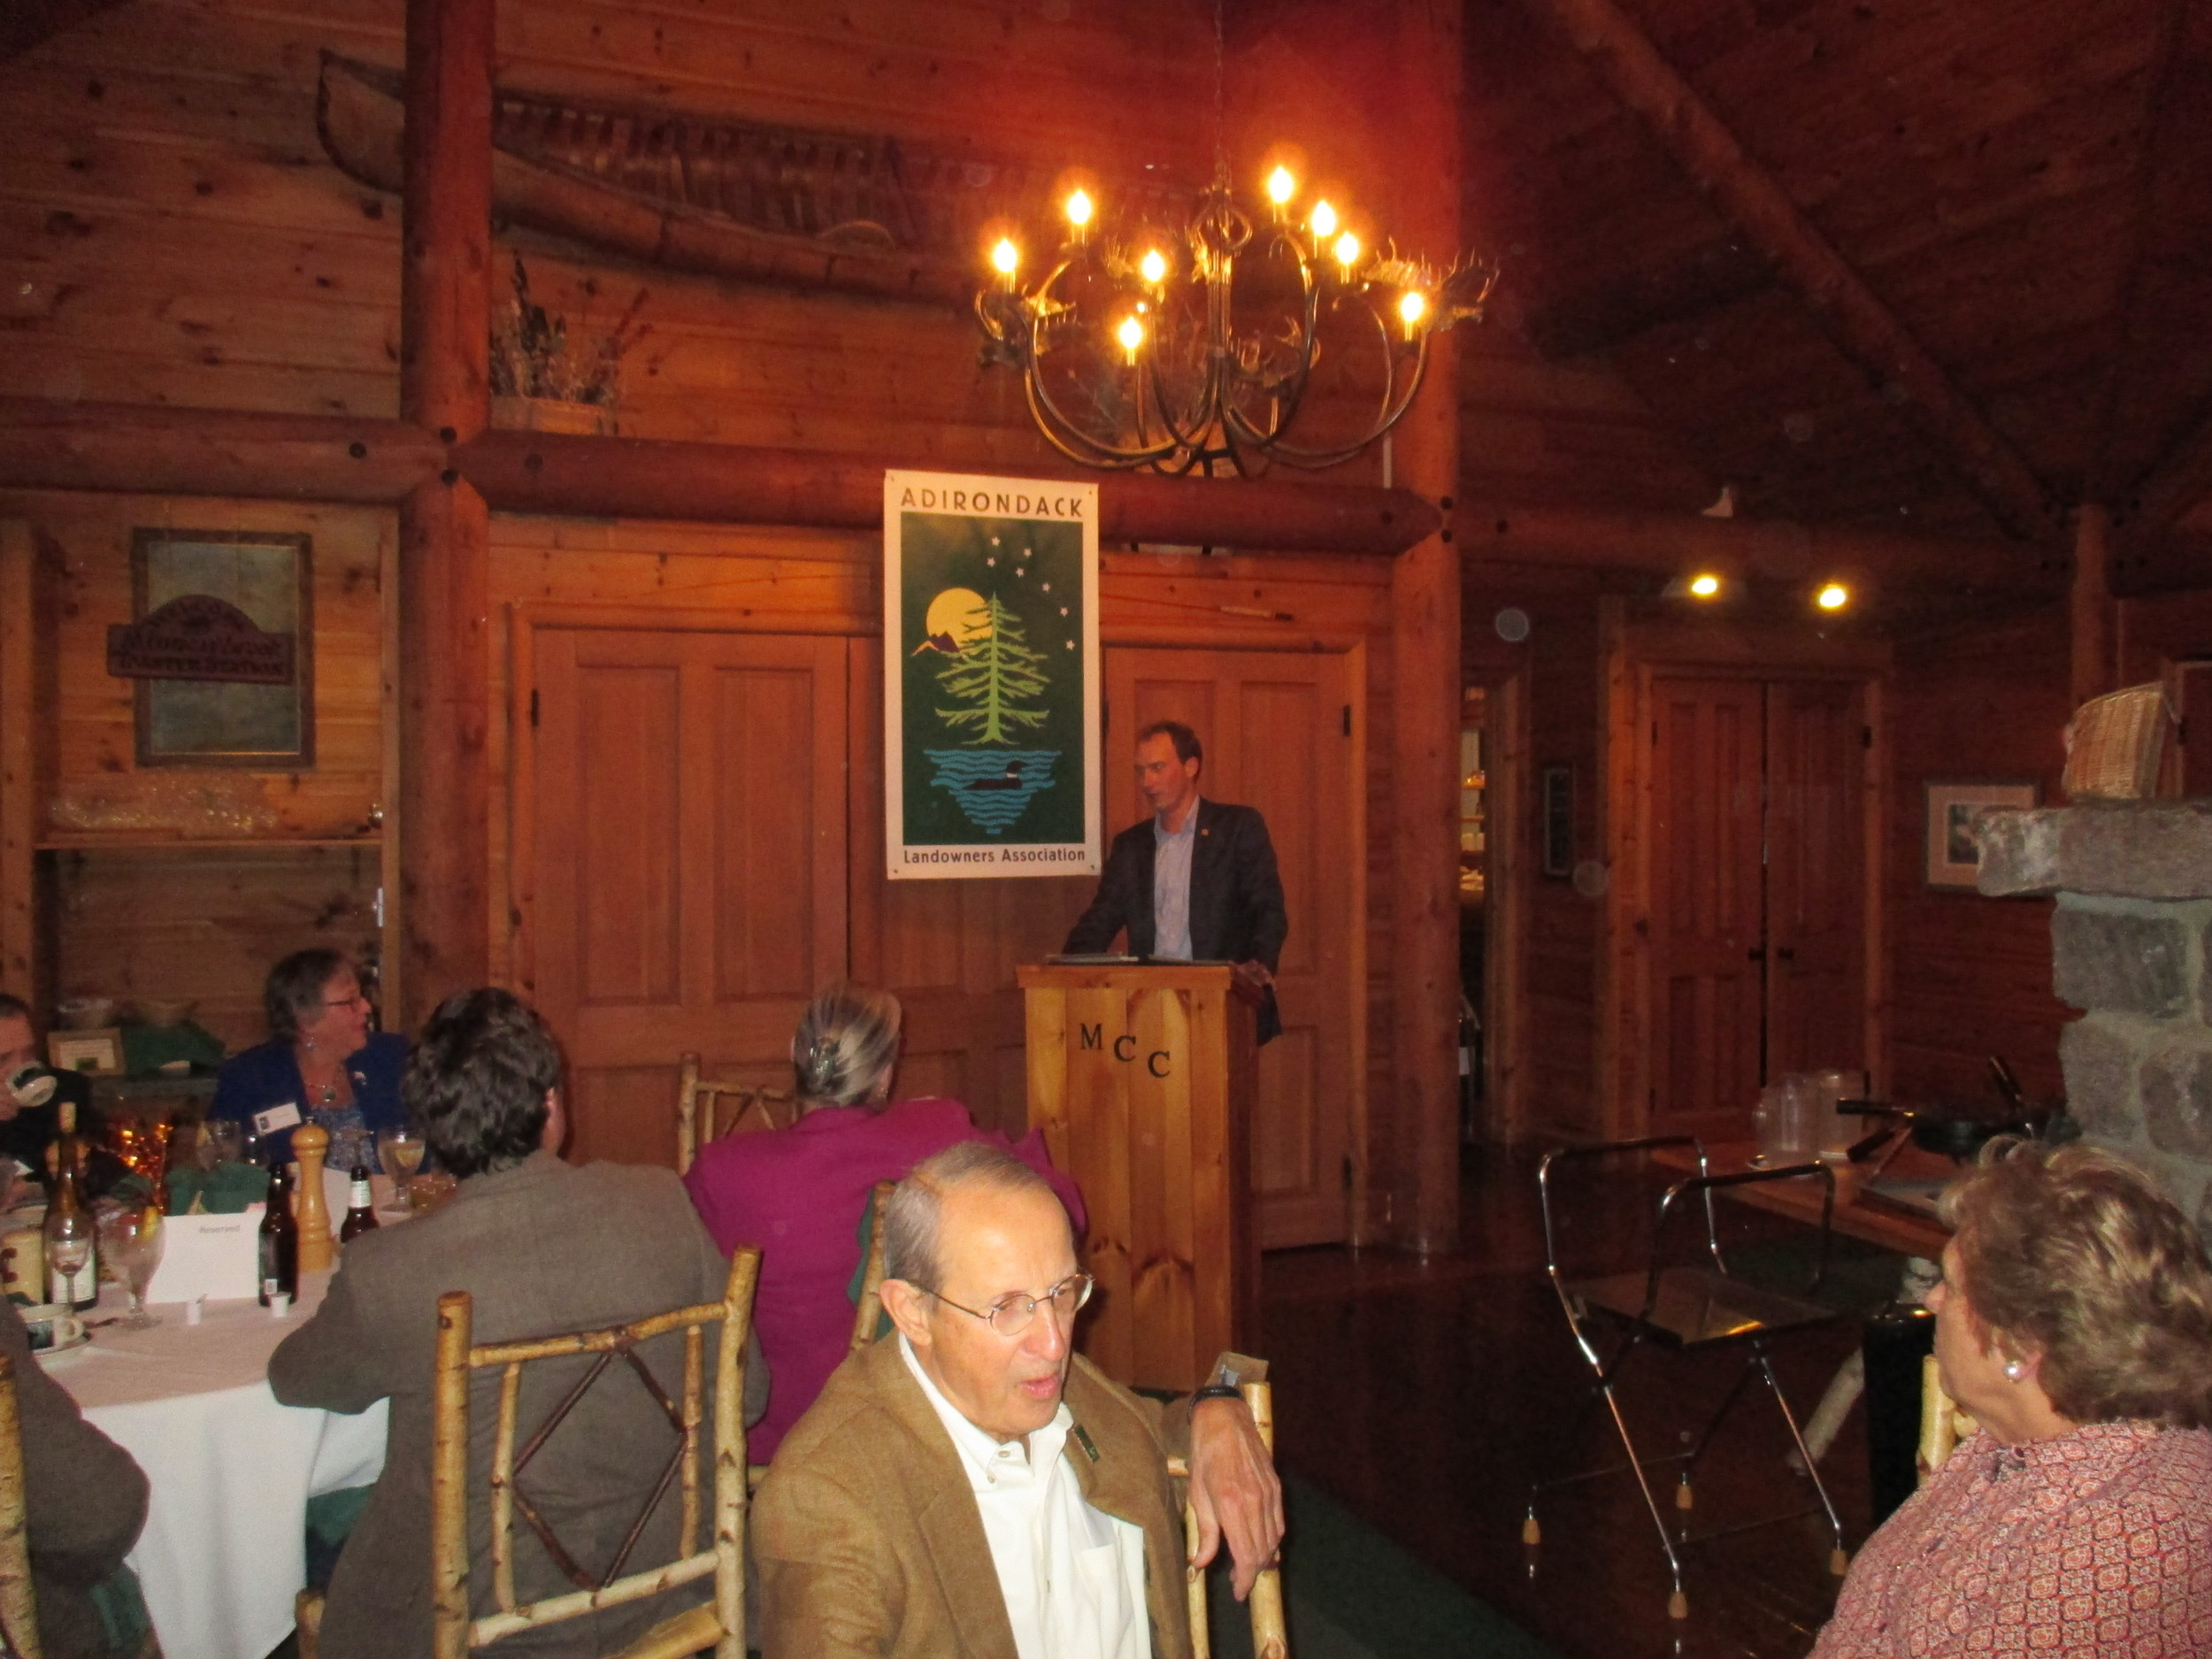 Peter Walke, Assistant Secretary for the Environment, speaks to the ALA members following dinner.